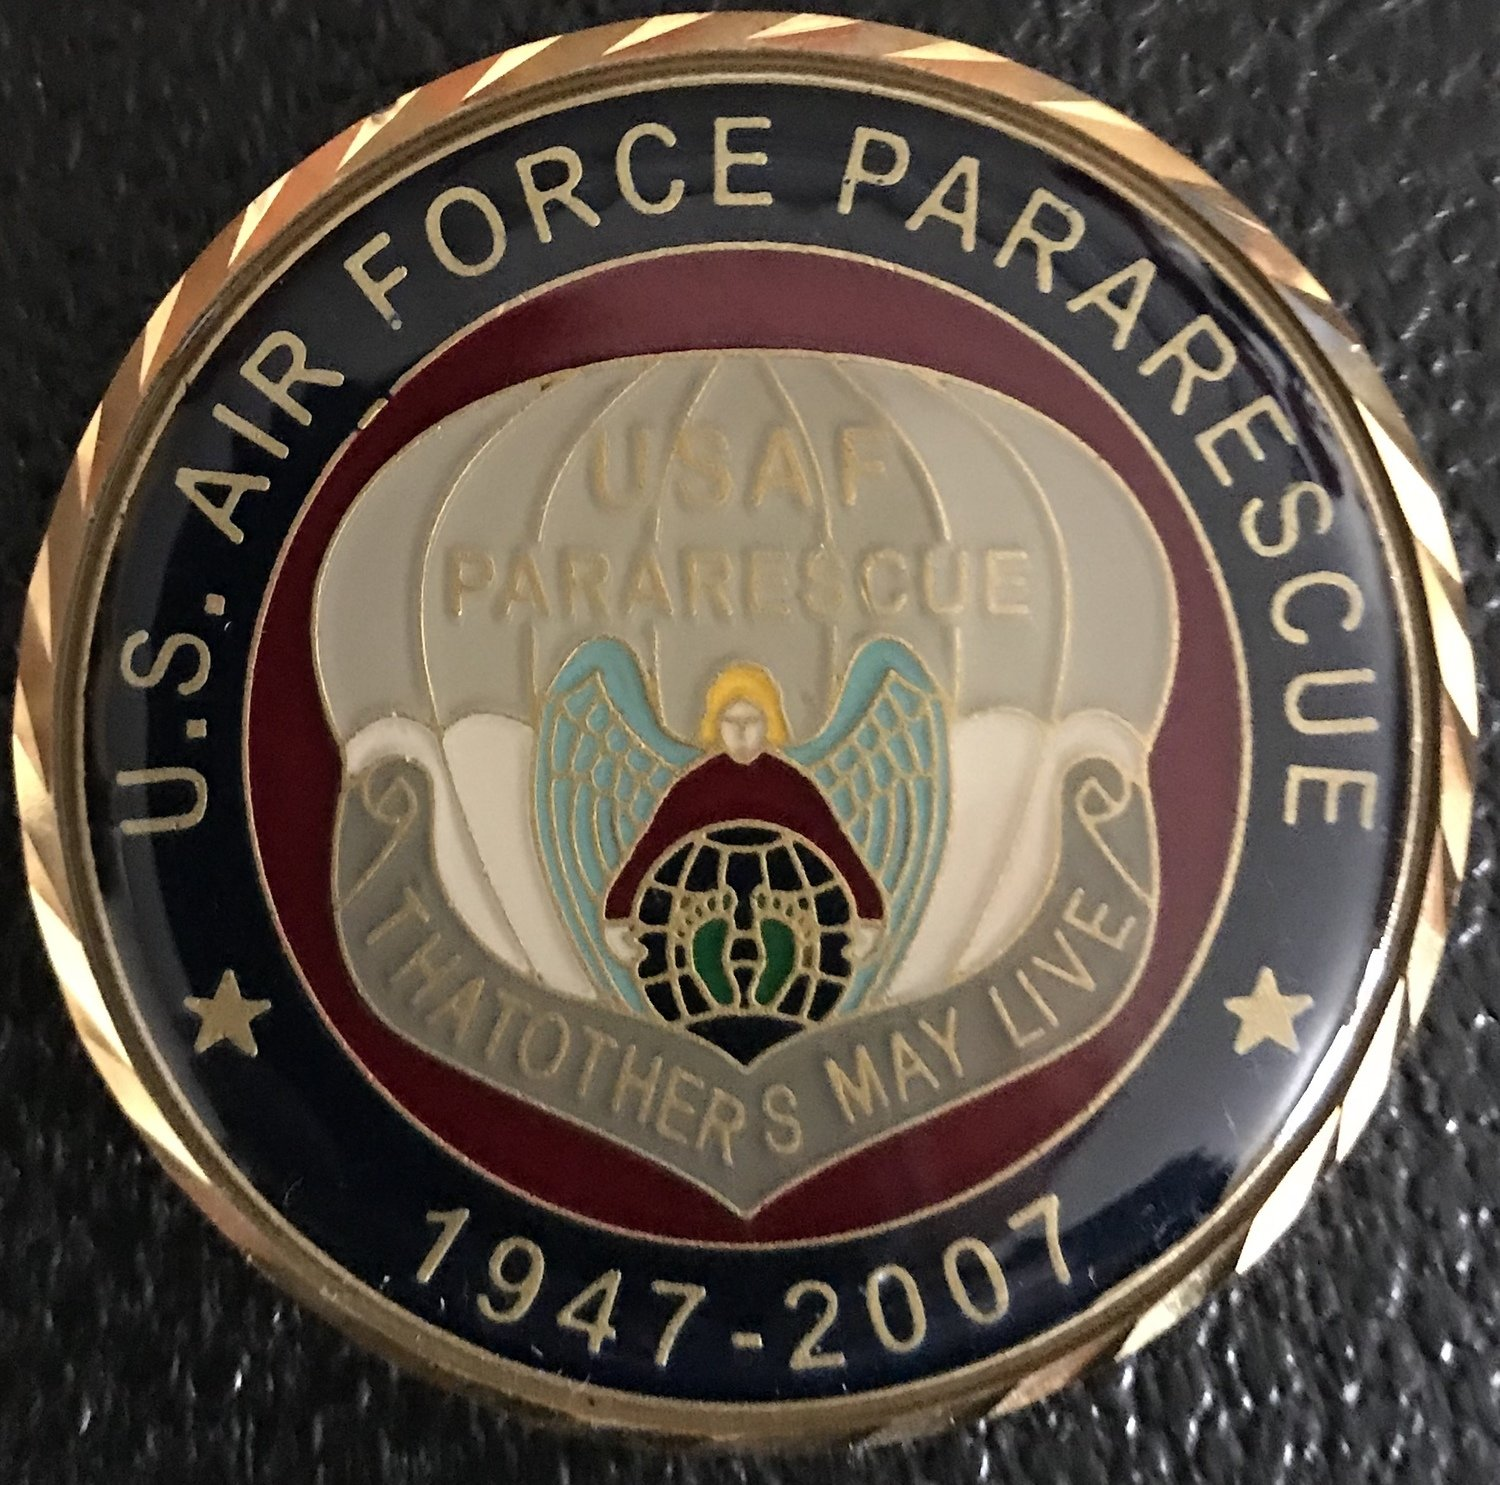 pja/ 60th Year ParaRescue Challenge Coin